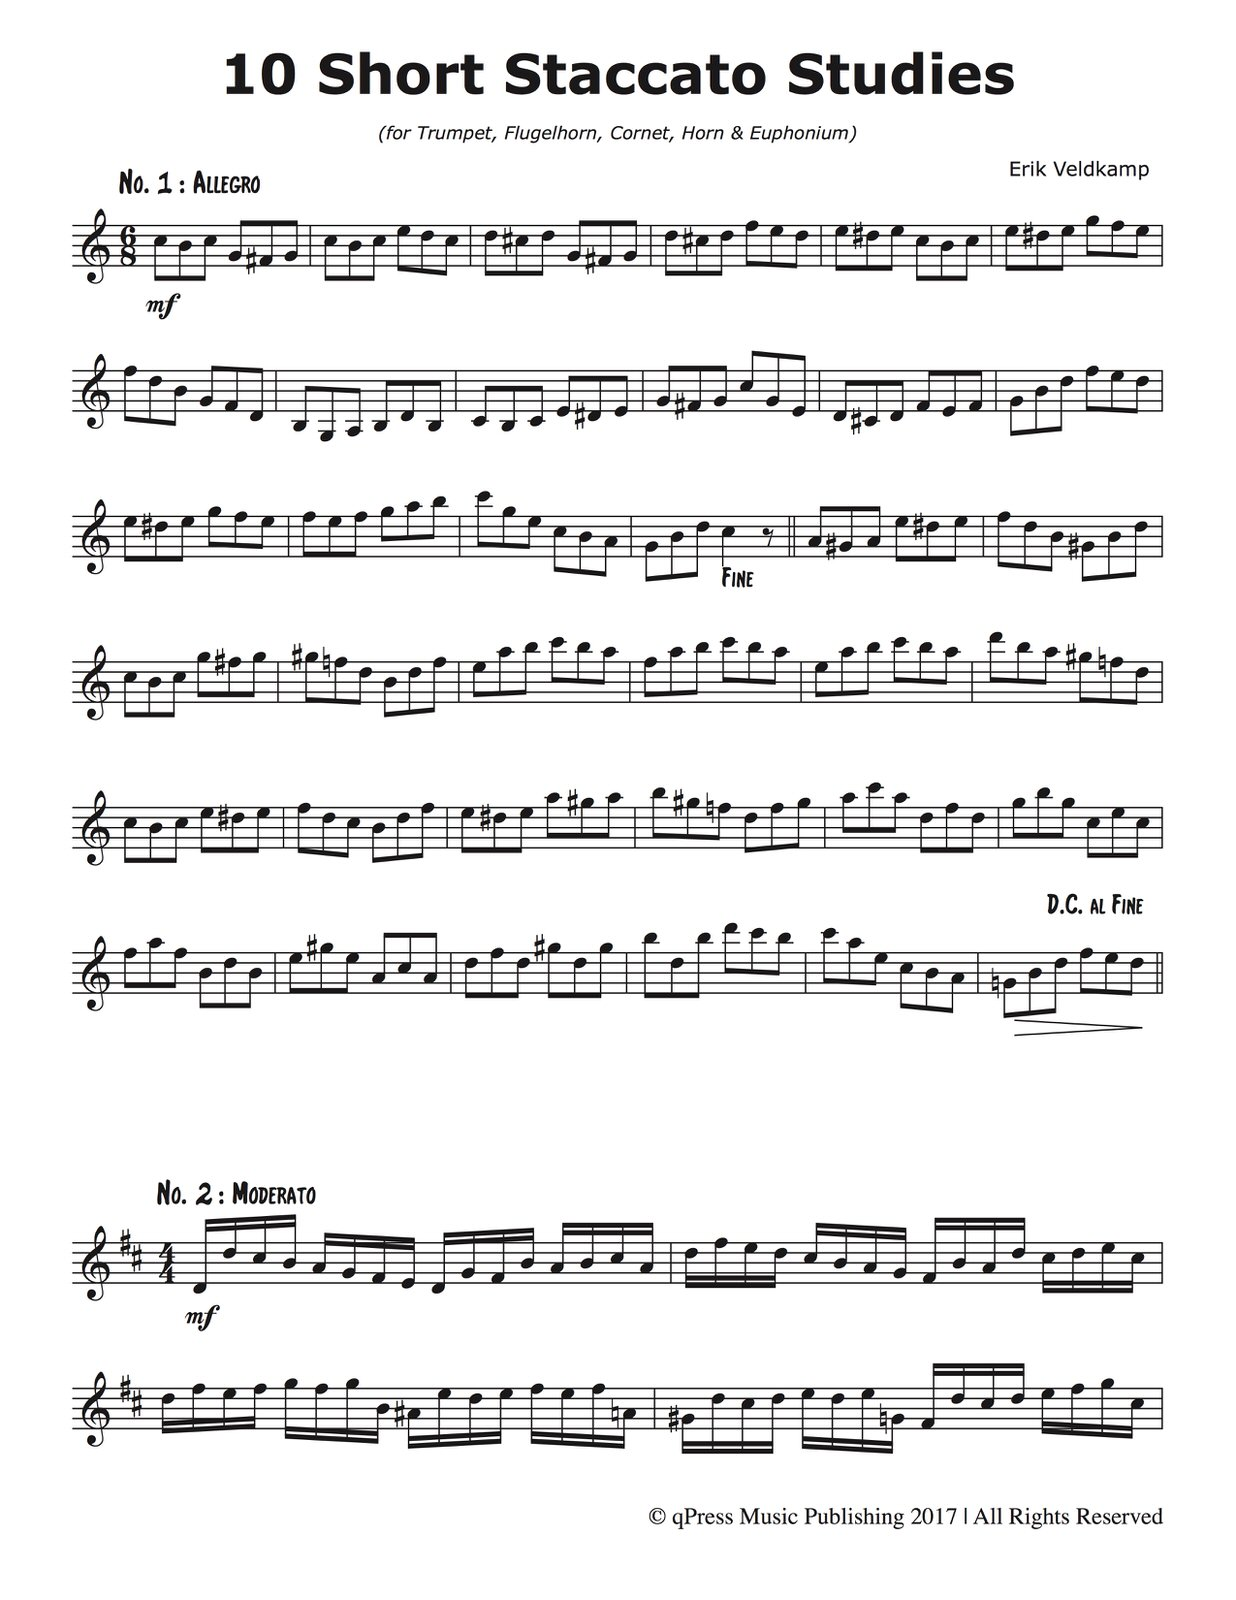 Veldkamp, 10 Short Staccato Studies-p2